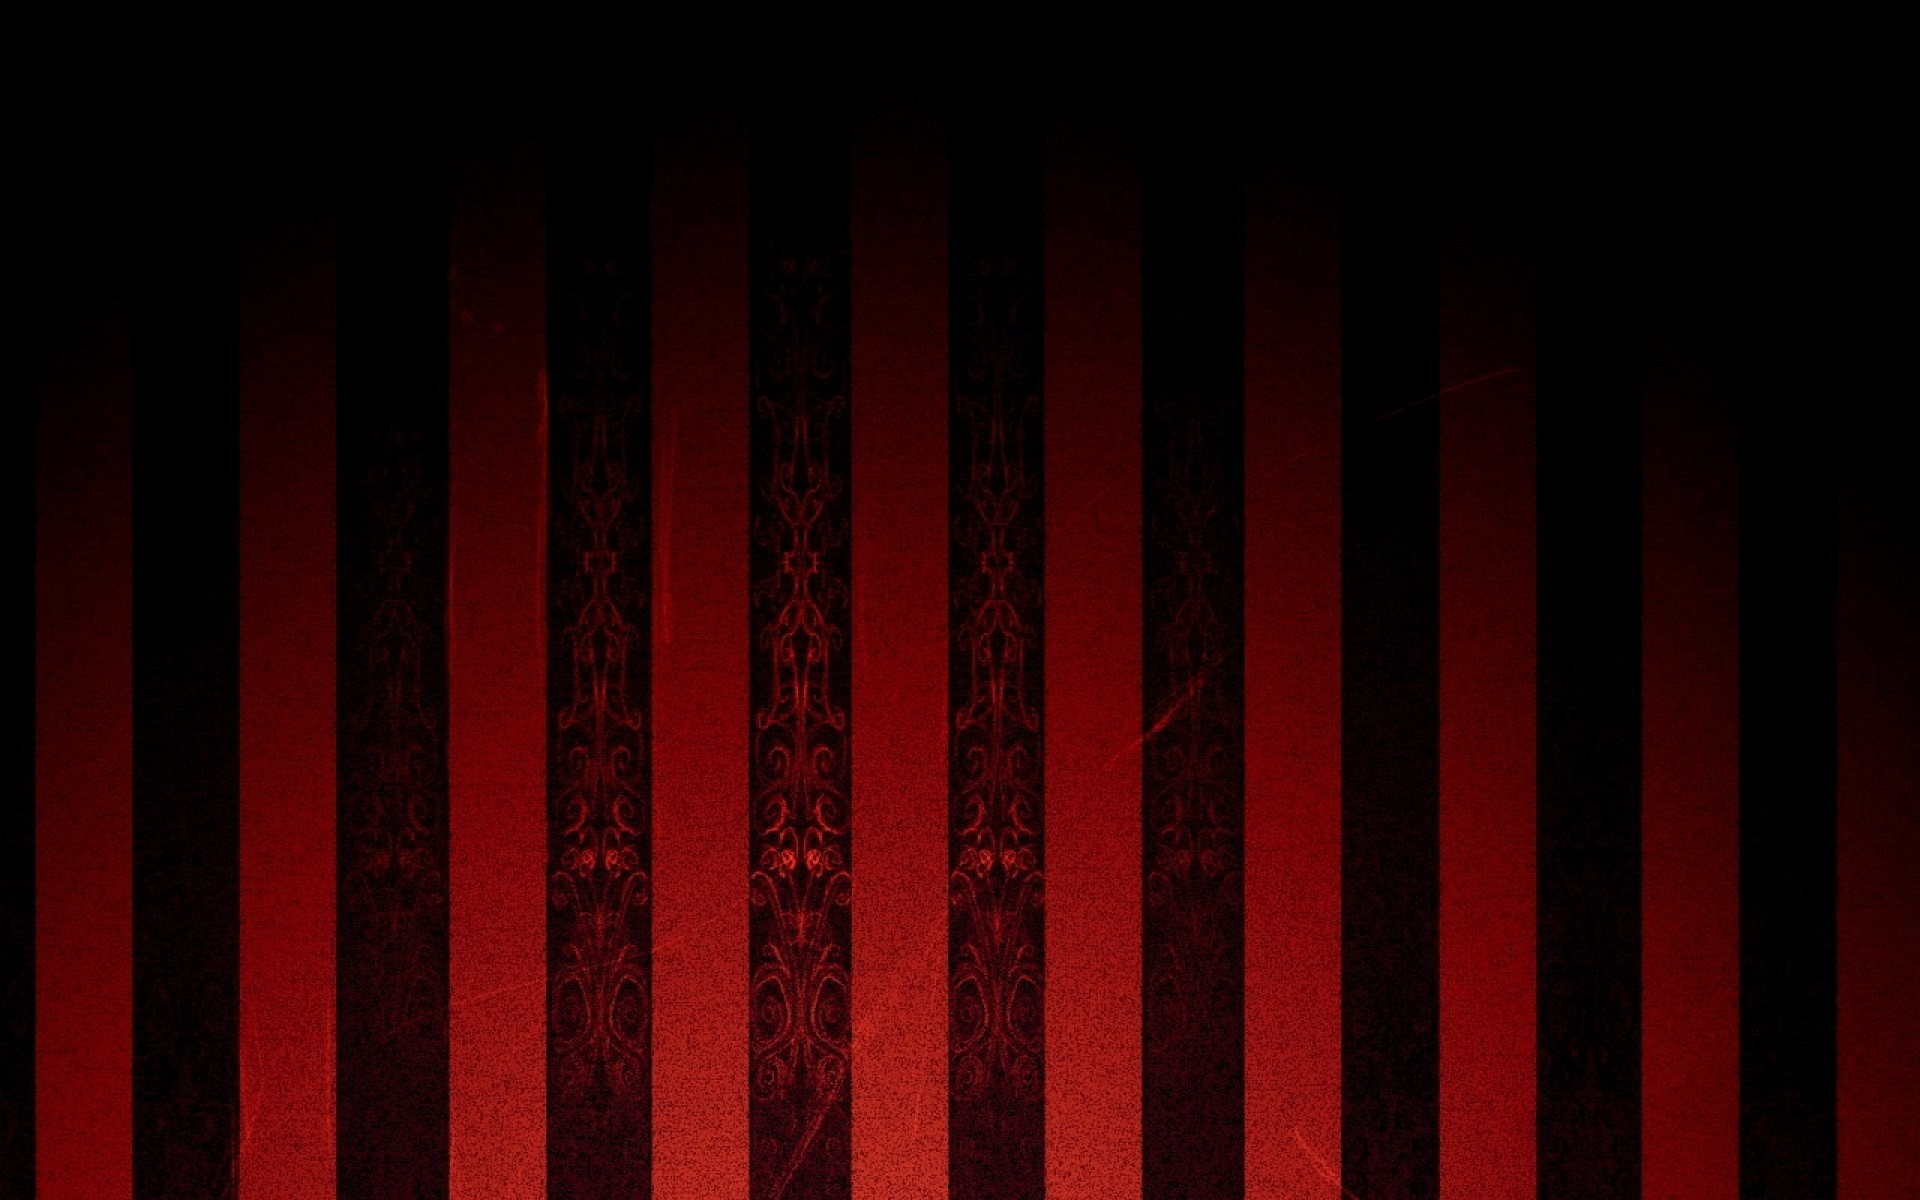 1920x1200 Black Red hd wallpaper for desktop HD Wallpaper